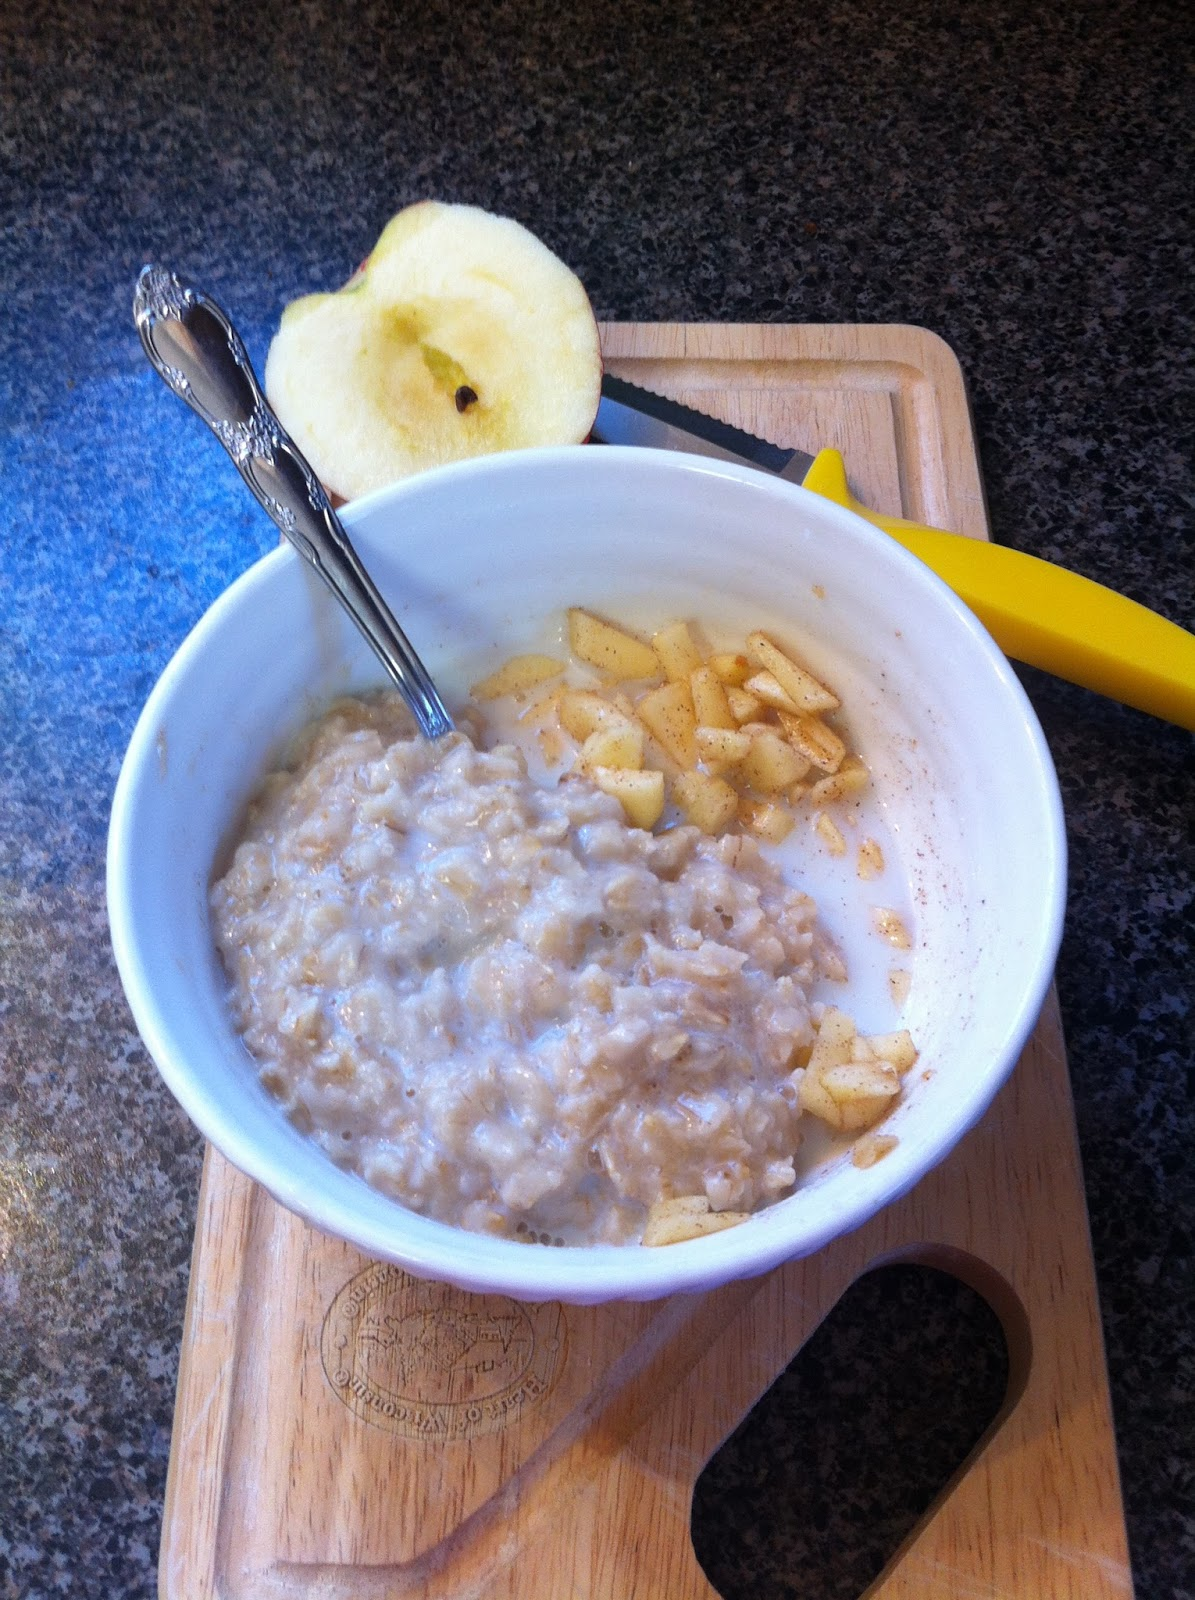 ... apple of choice 1 2 cup dry oats 1 dash cinnamon 1 dash apple pie